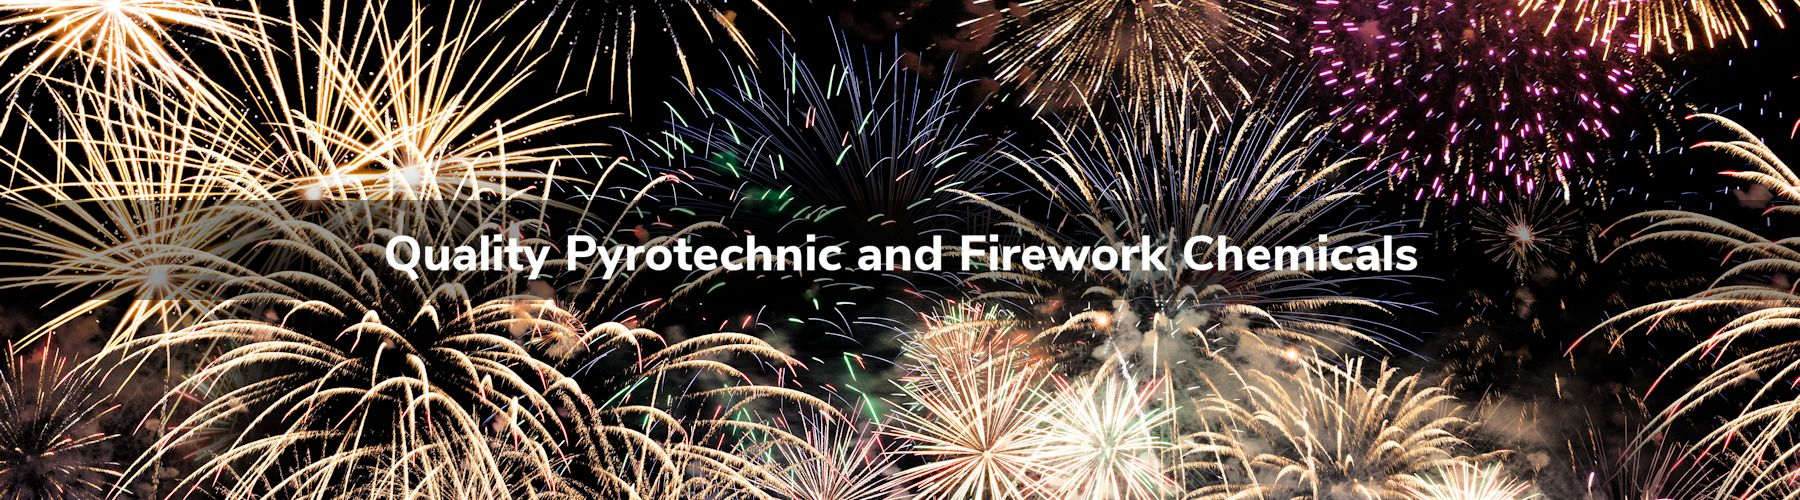 Welcome to Pyro Chemical Source LLC - Quality Pyrotechnic